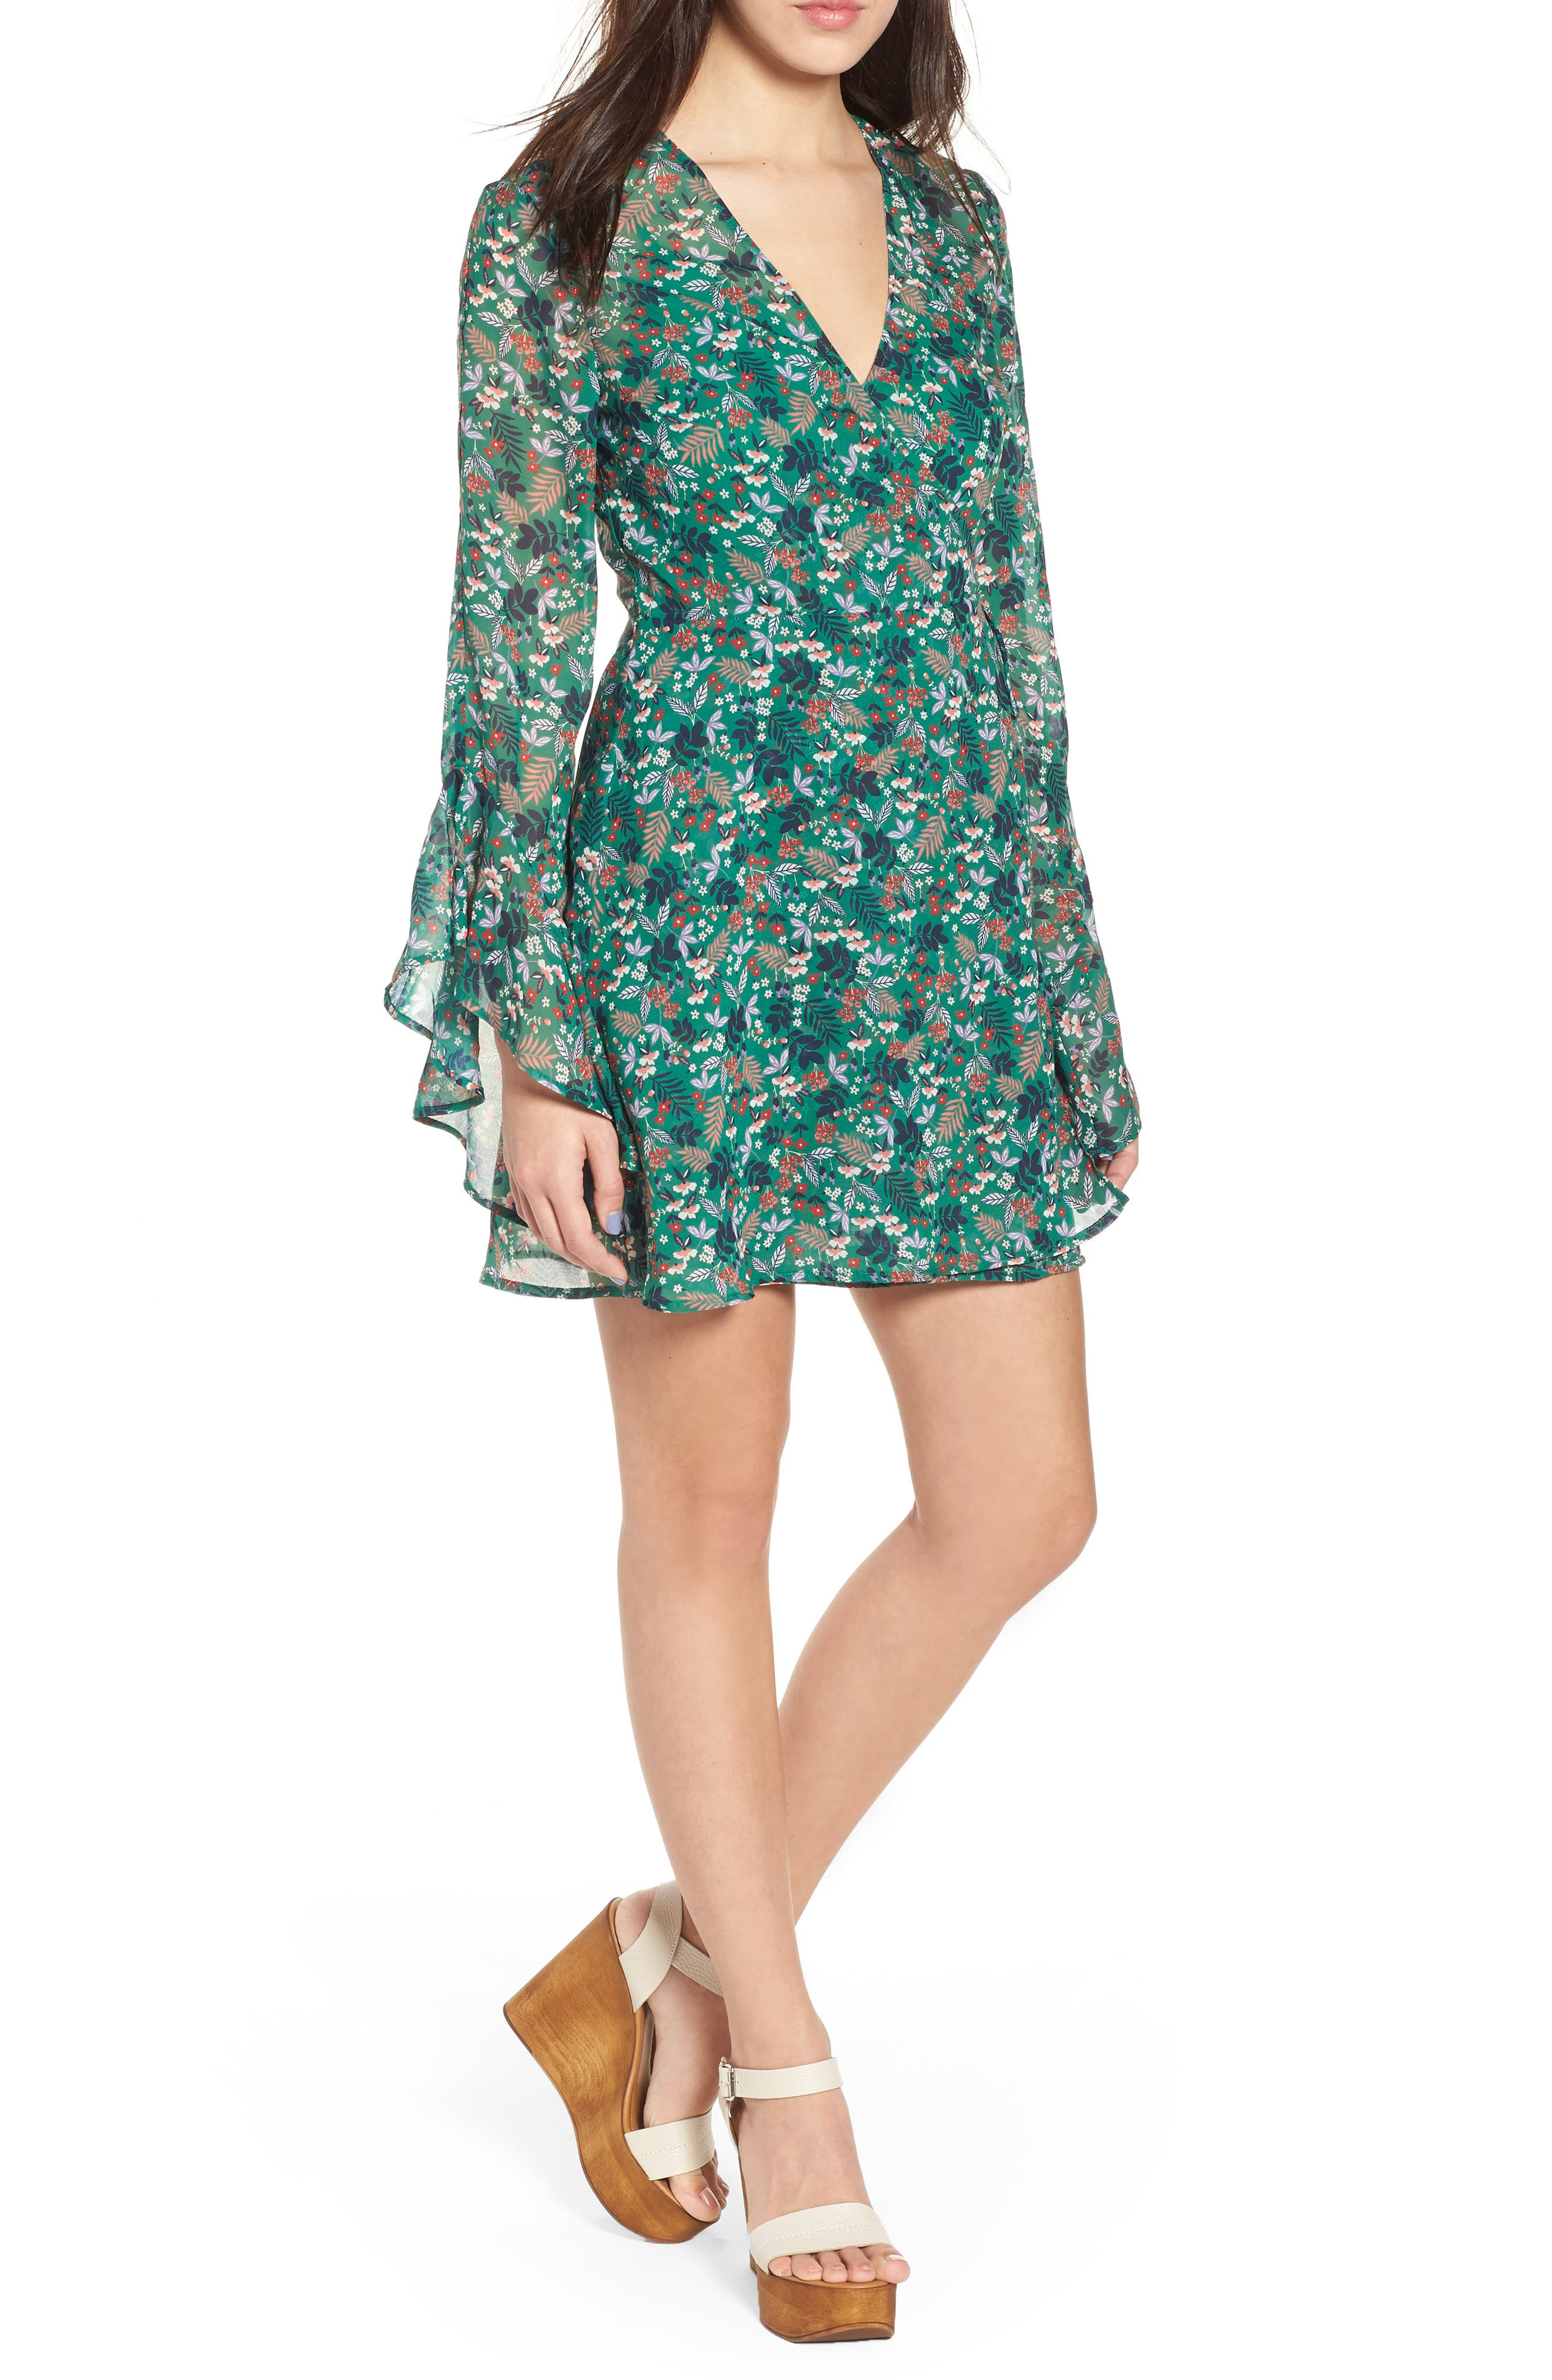 Viridian Floral Wrap Dress,                             Main thumbnail 1, color,                             305